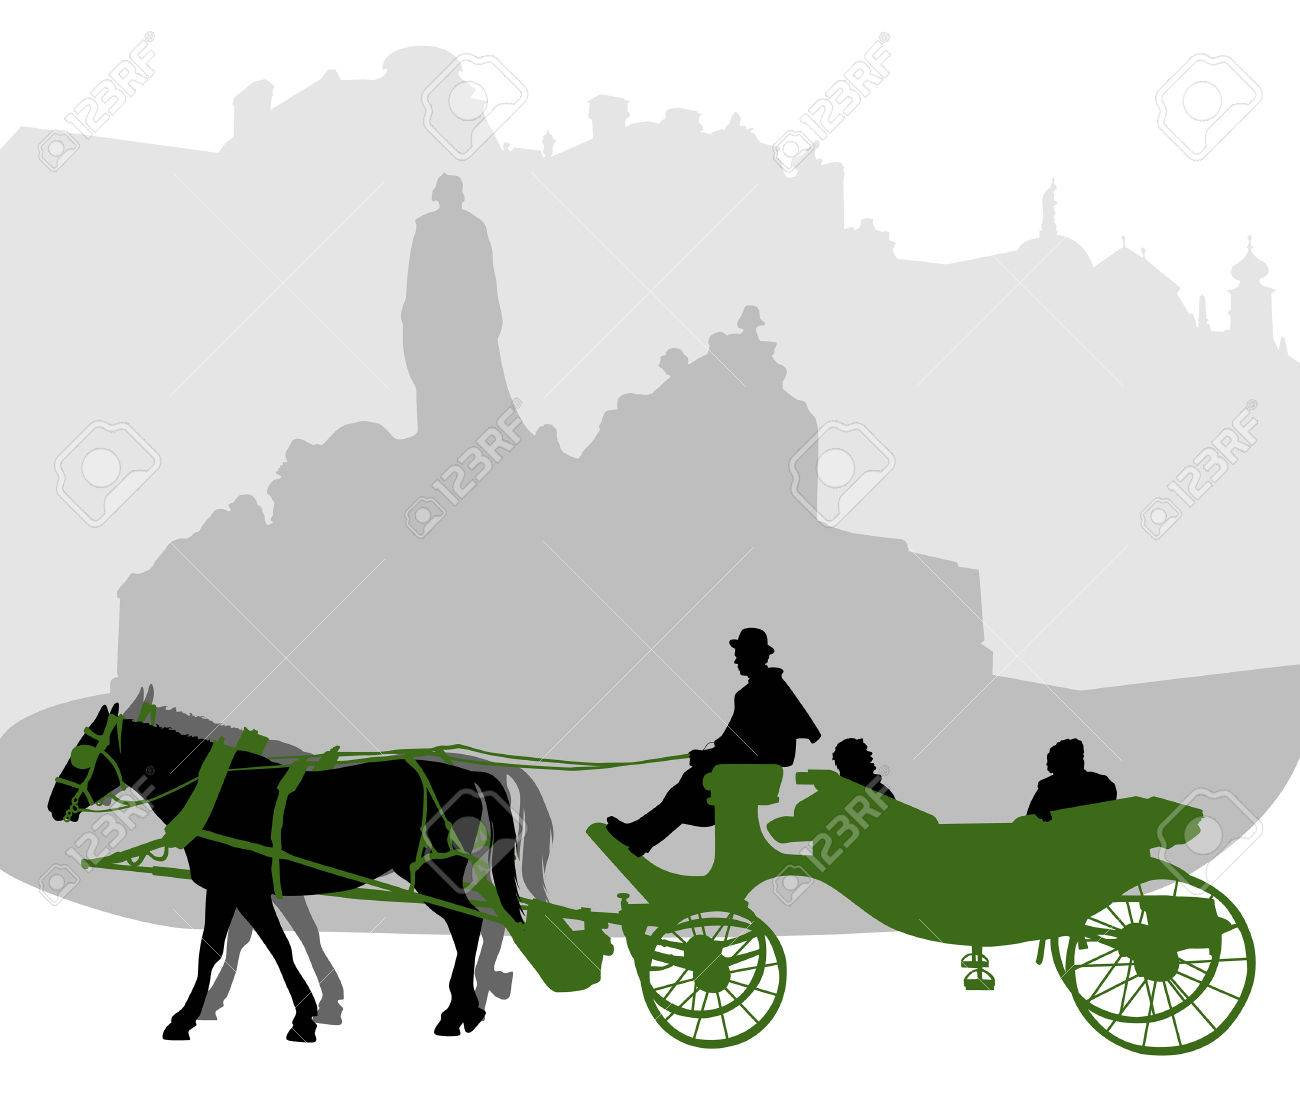 Silhouette of a carriage in Old Town Square in Prague near the monument to Jan Hus Stock Vector - 8660810